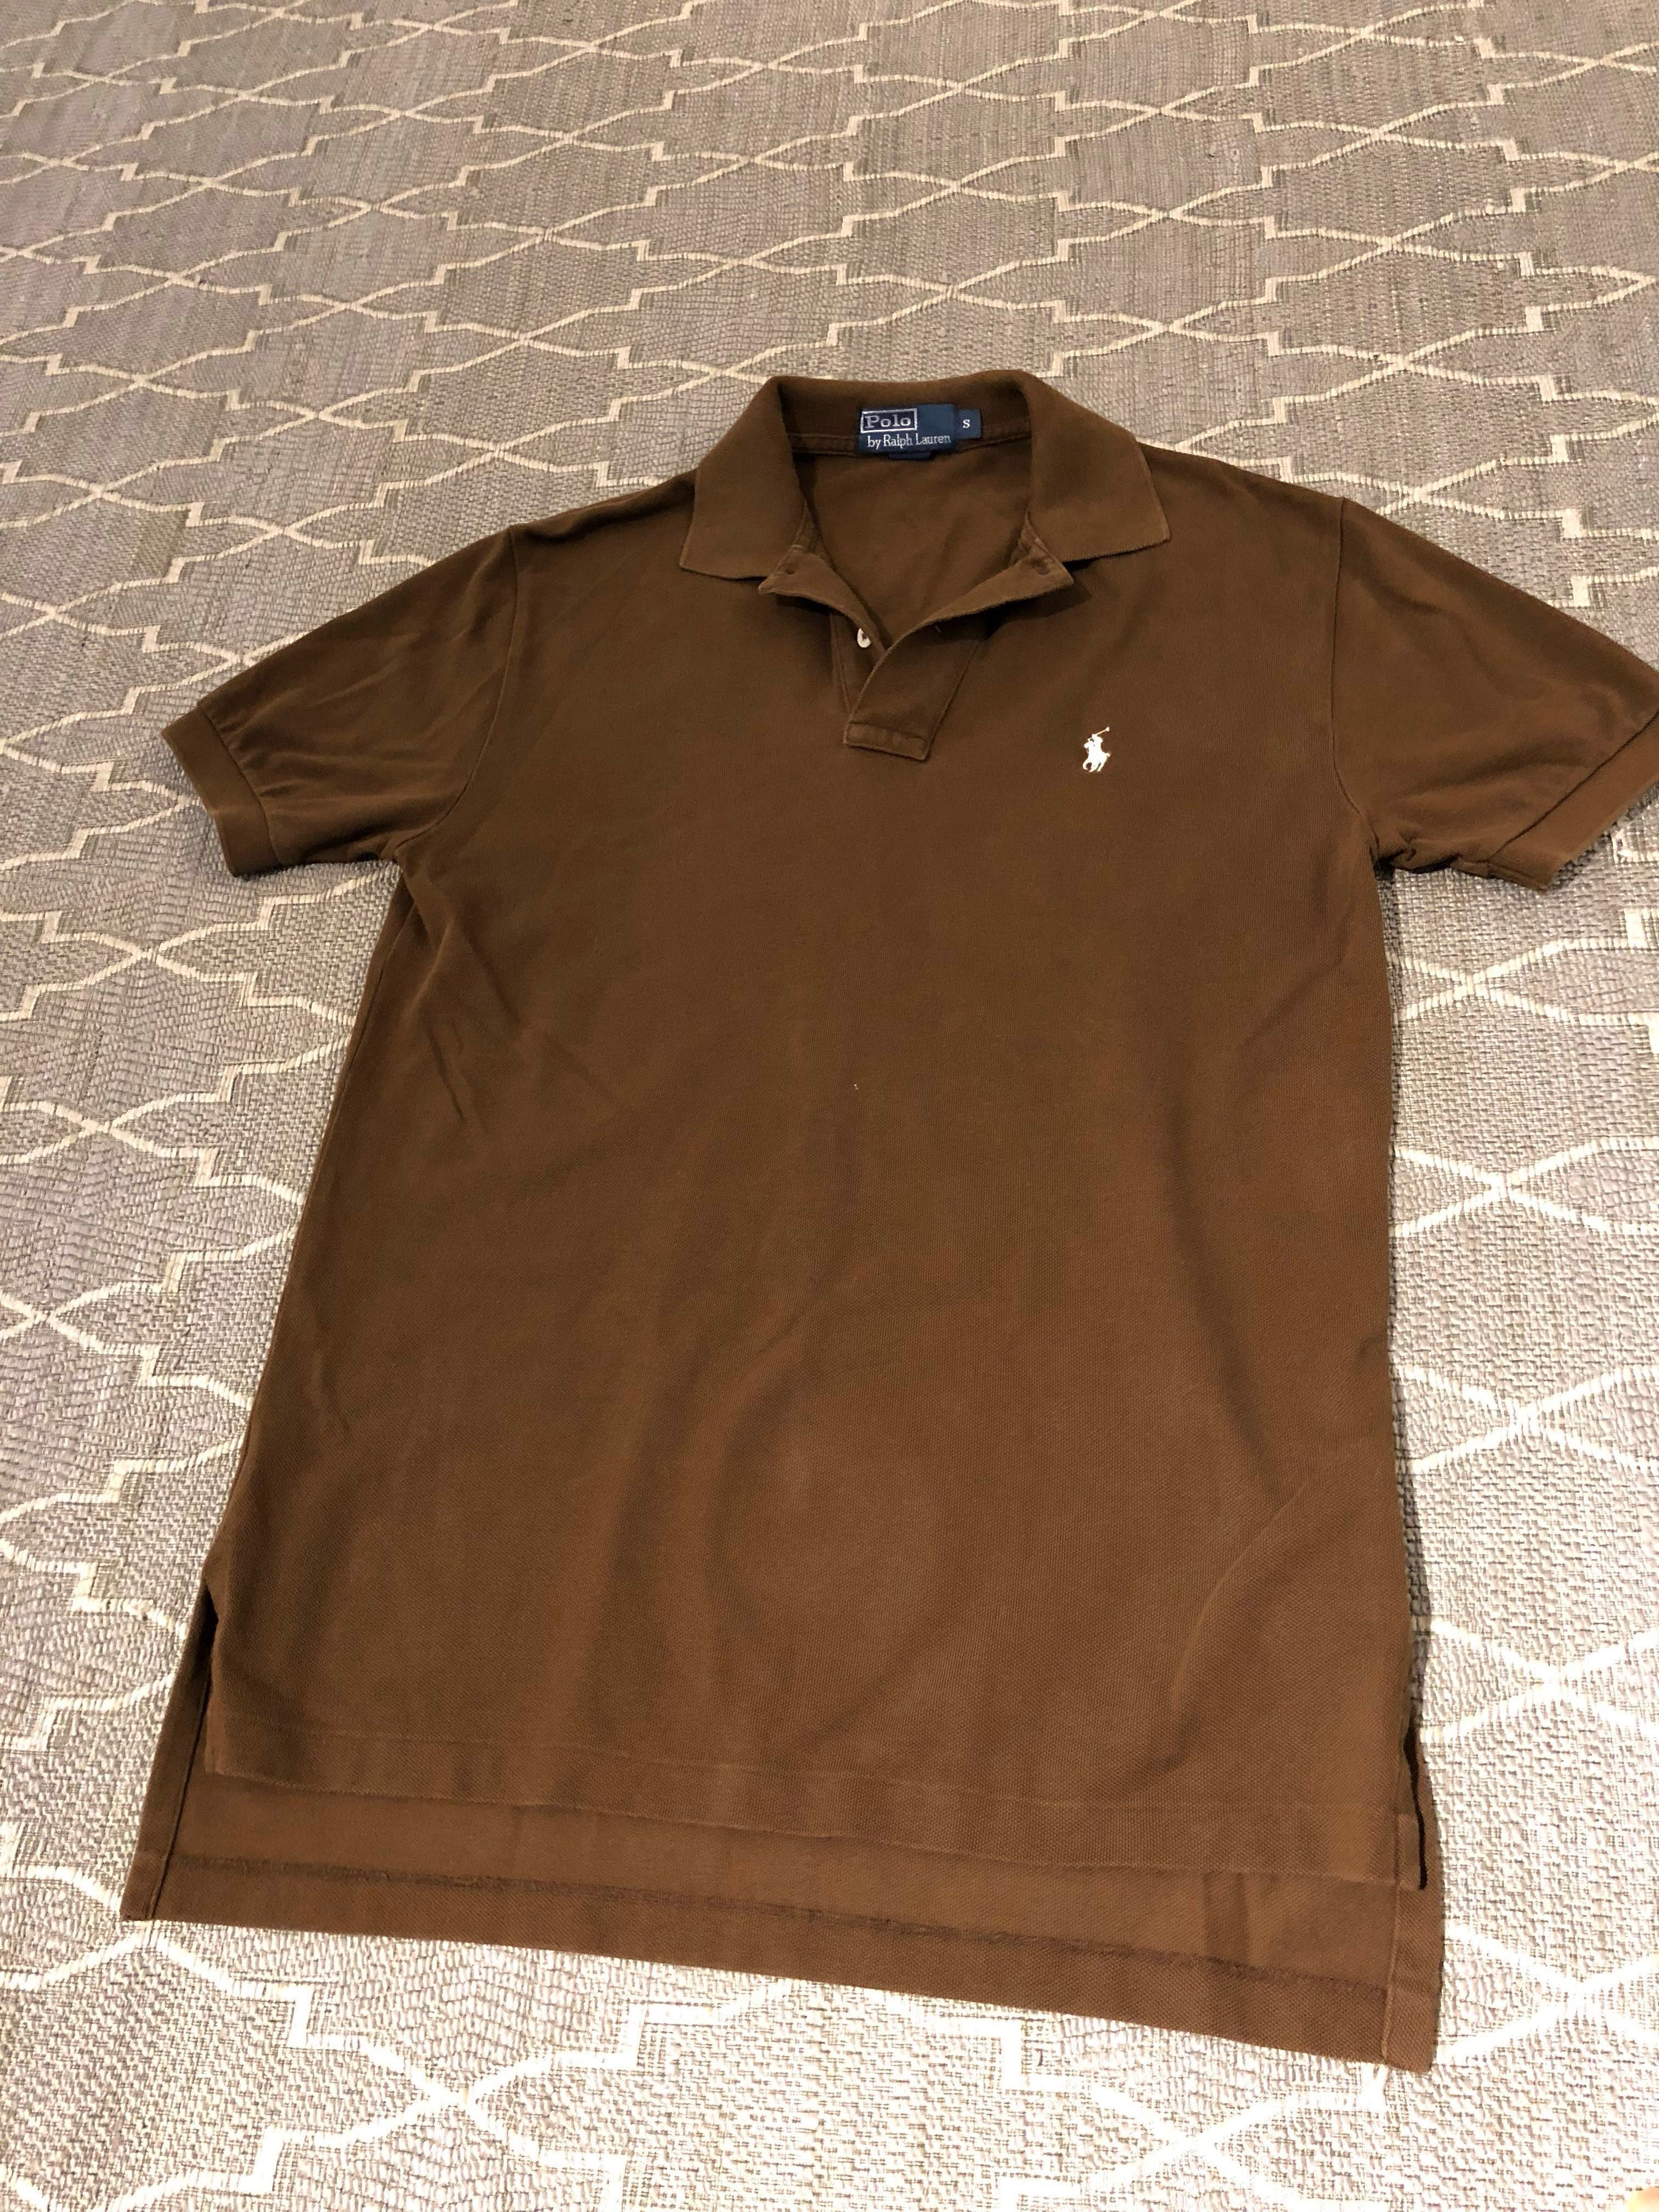 77332b284eac Polo Ralph Lauren Polo Tee (in brown) sz S, Men's Fashion, Clothes, Tops on  Carousell